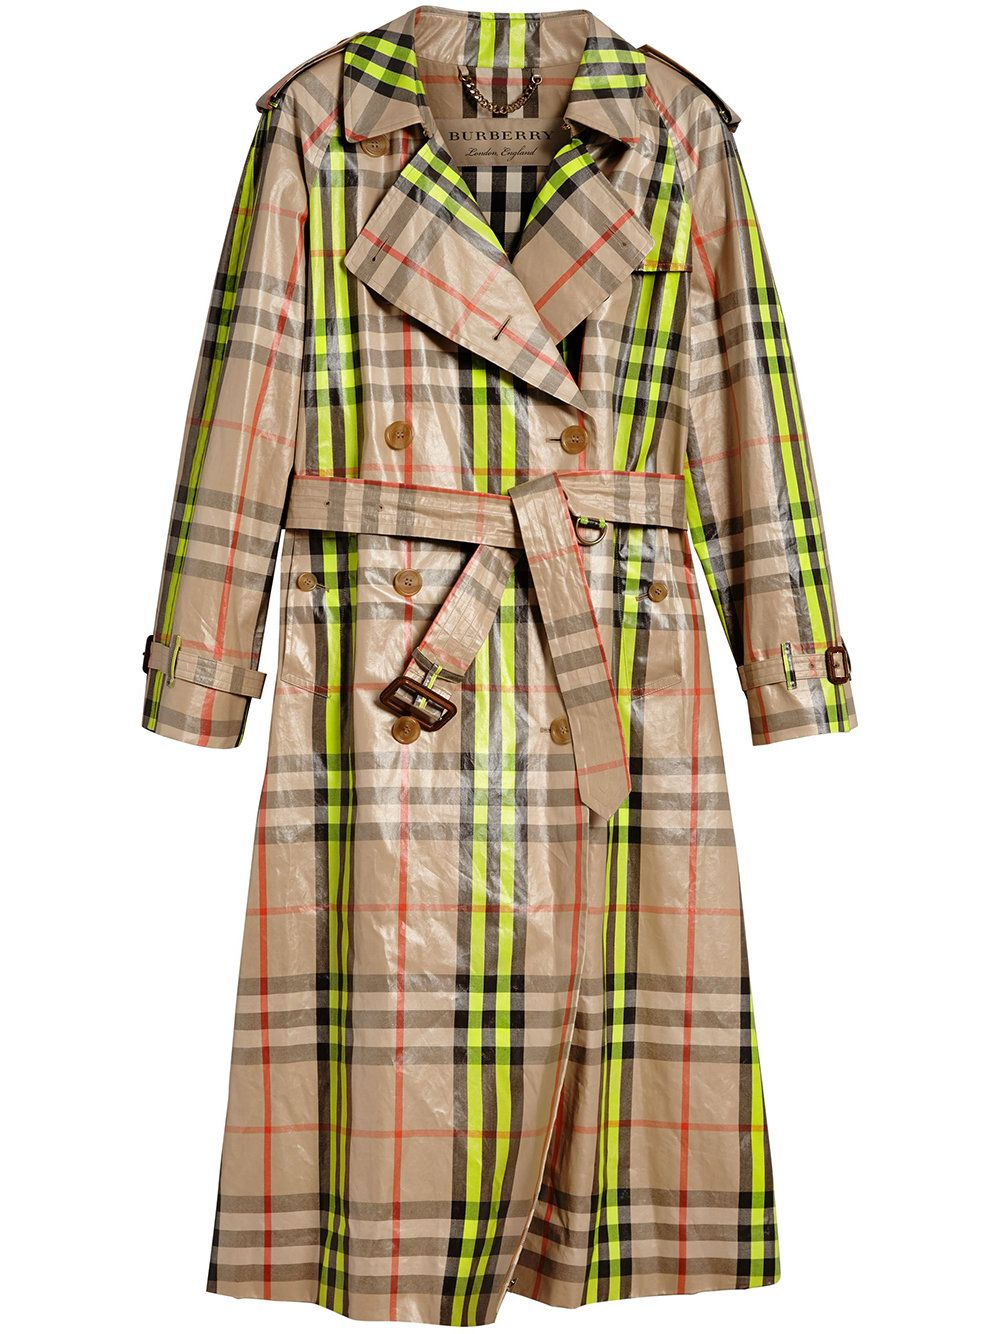 9c0f0c7ef1 Burberry Laminated Check Trench Coat – Online Exclusive | chartreuse ...